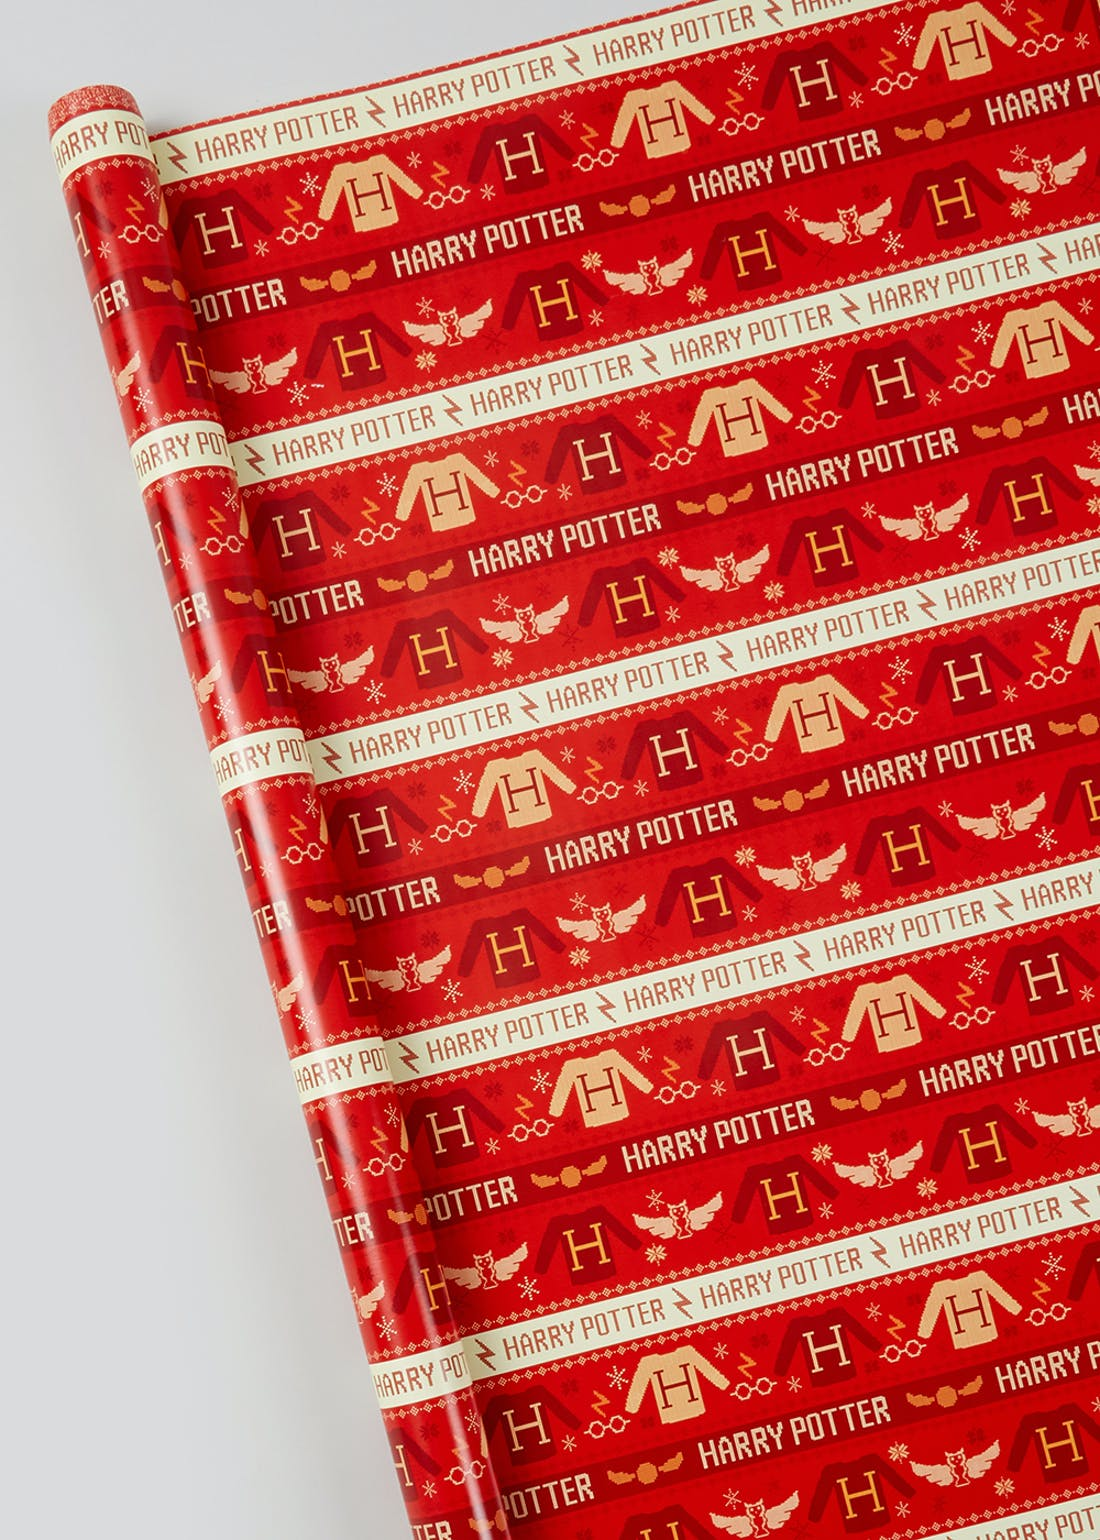 Harry Potter Christmas Wrapping Paper (4m)